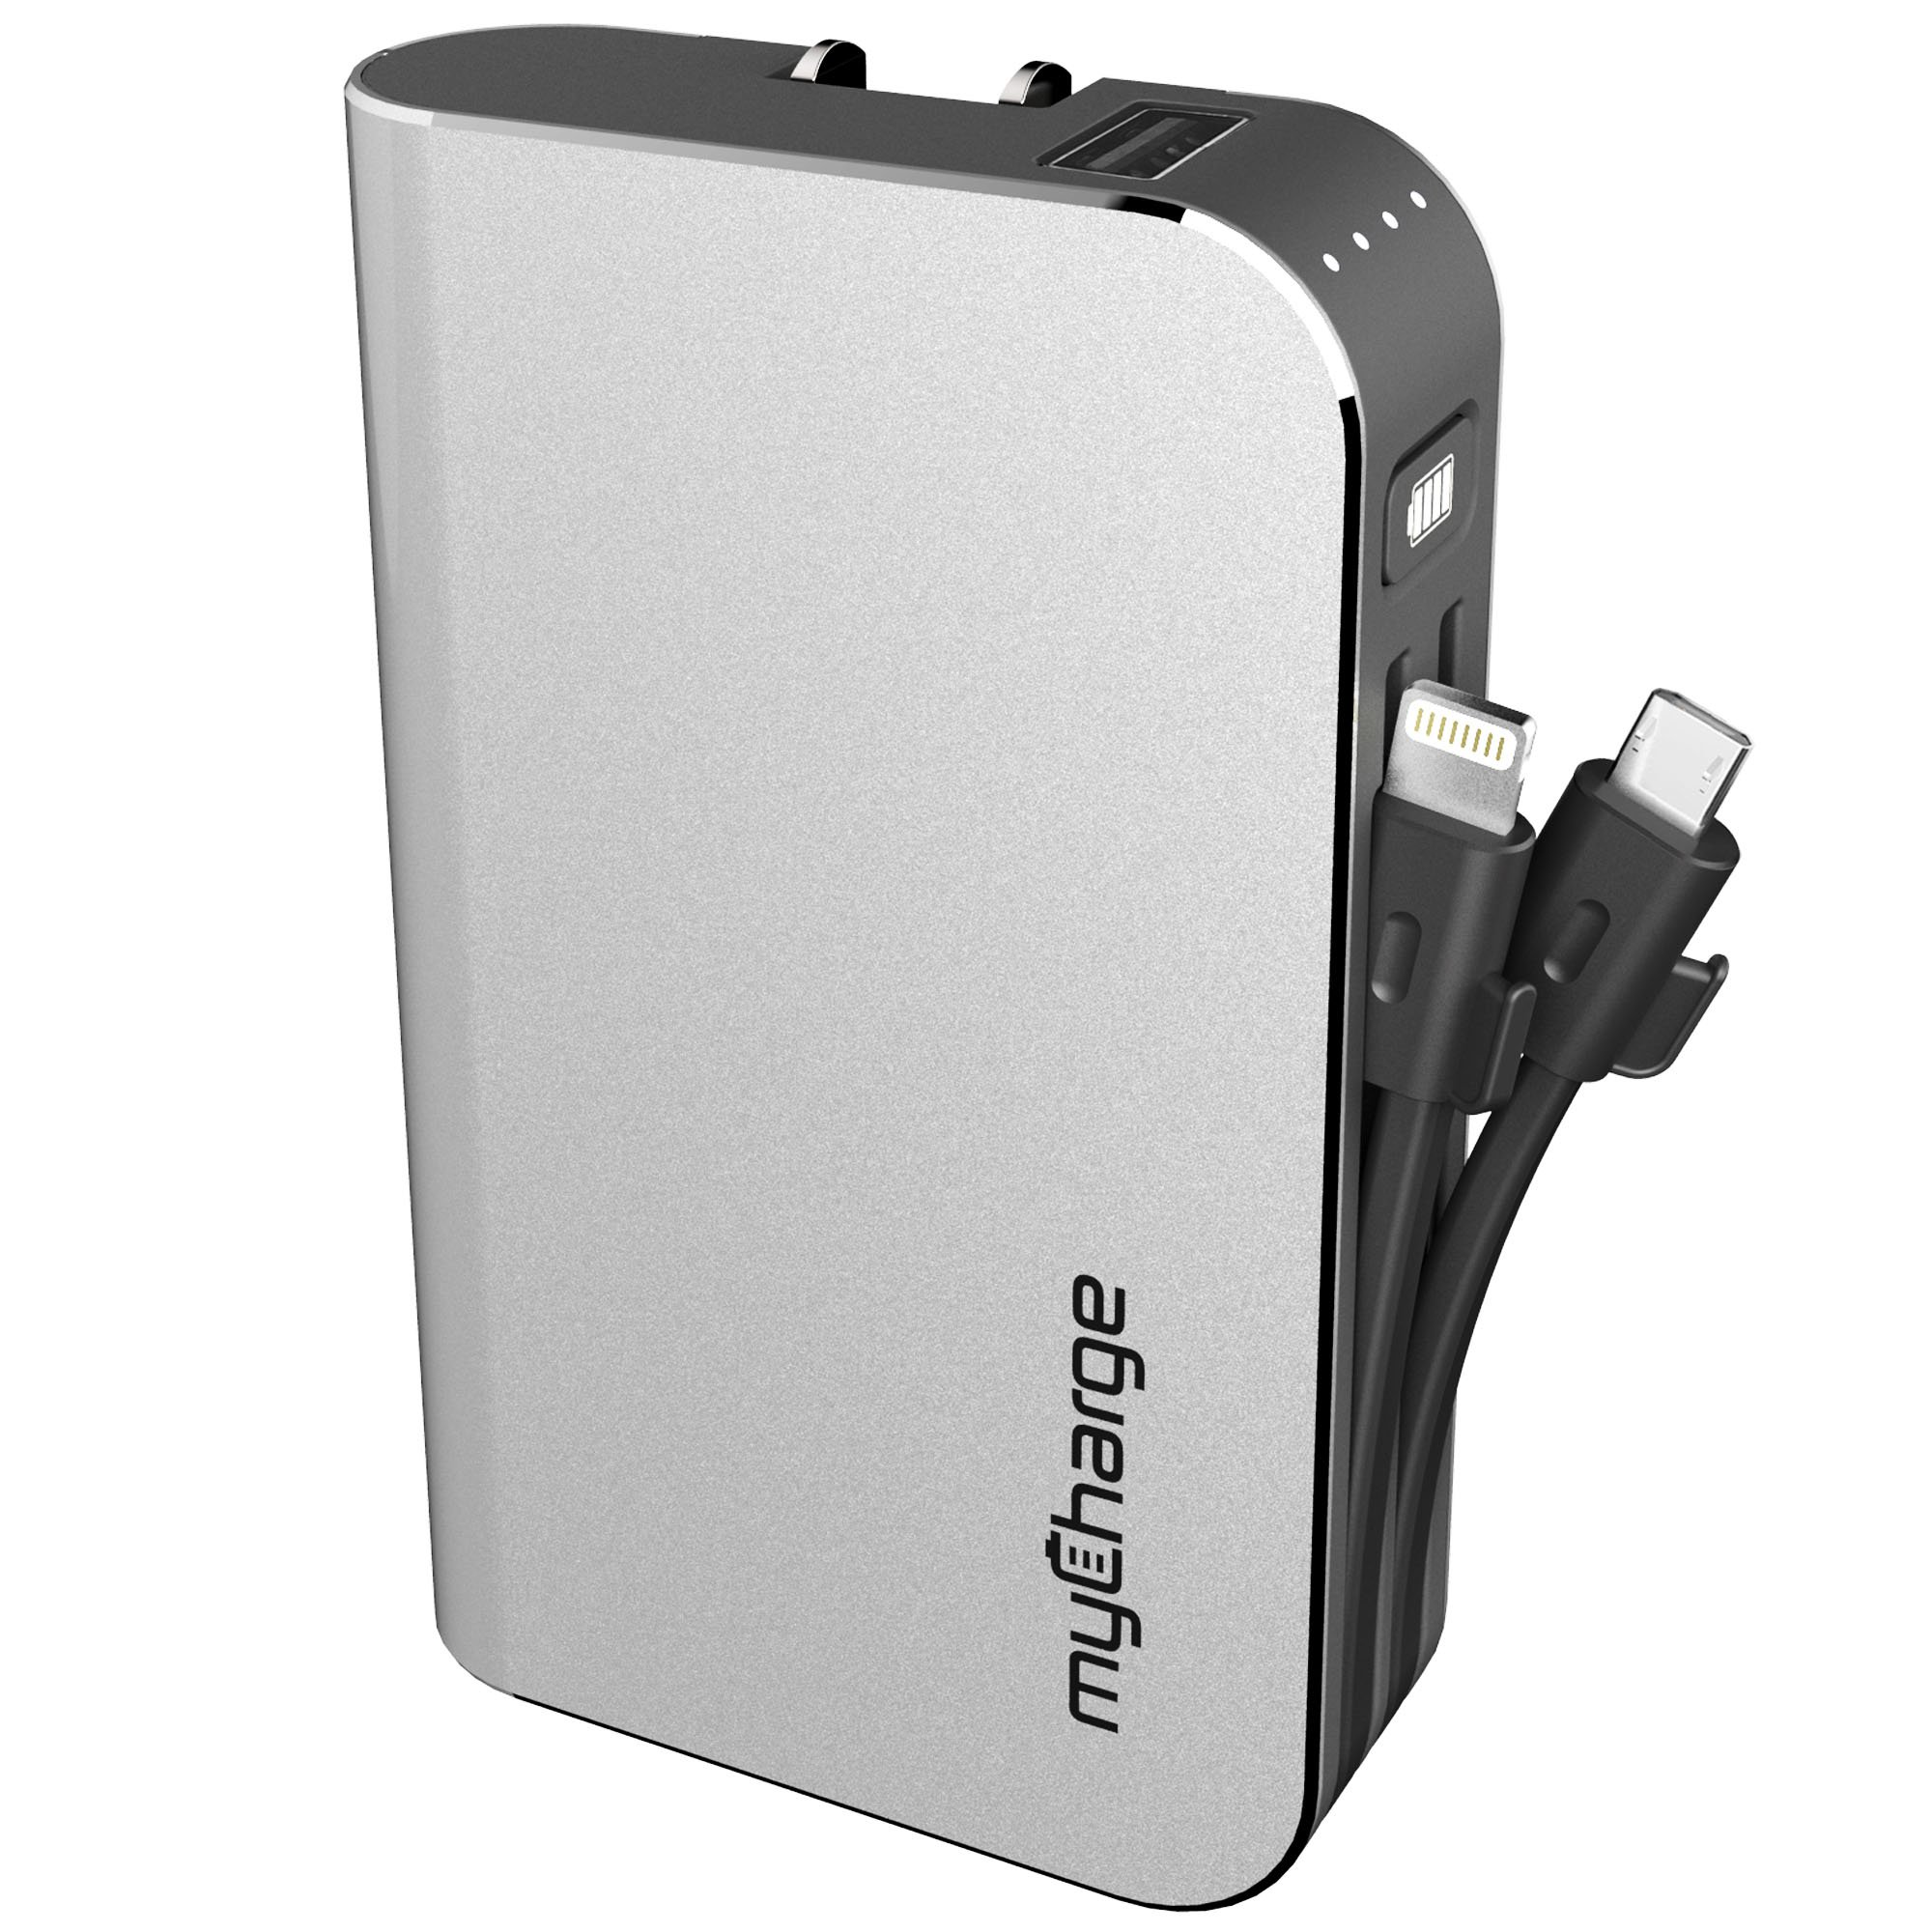 myCharge HubPlus Portable Charger 6700mAh/3.4A External Battery Pack with Built-in USB Port, Integrated Apple Lightning and Micro-USB Cables, Foldable Wall Plug for iPhone, iPad, Samsung Galaxy